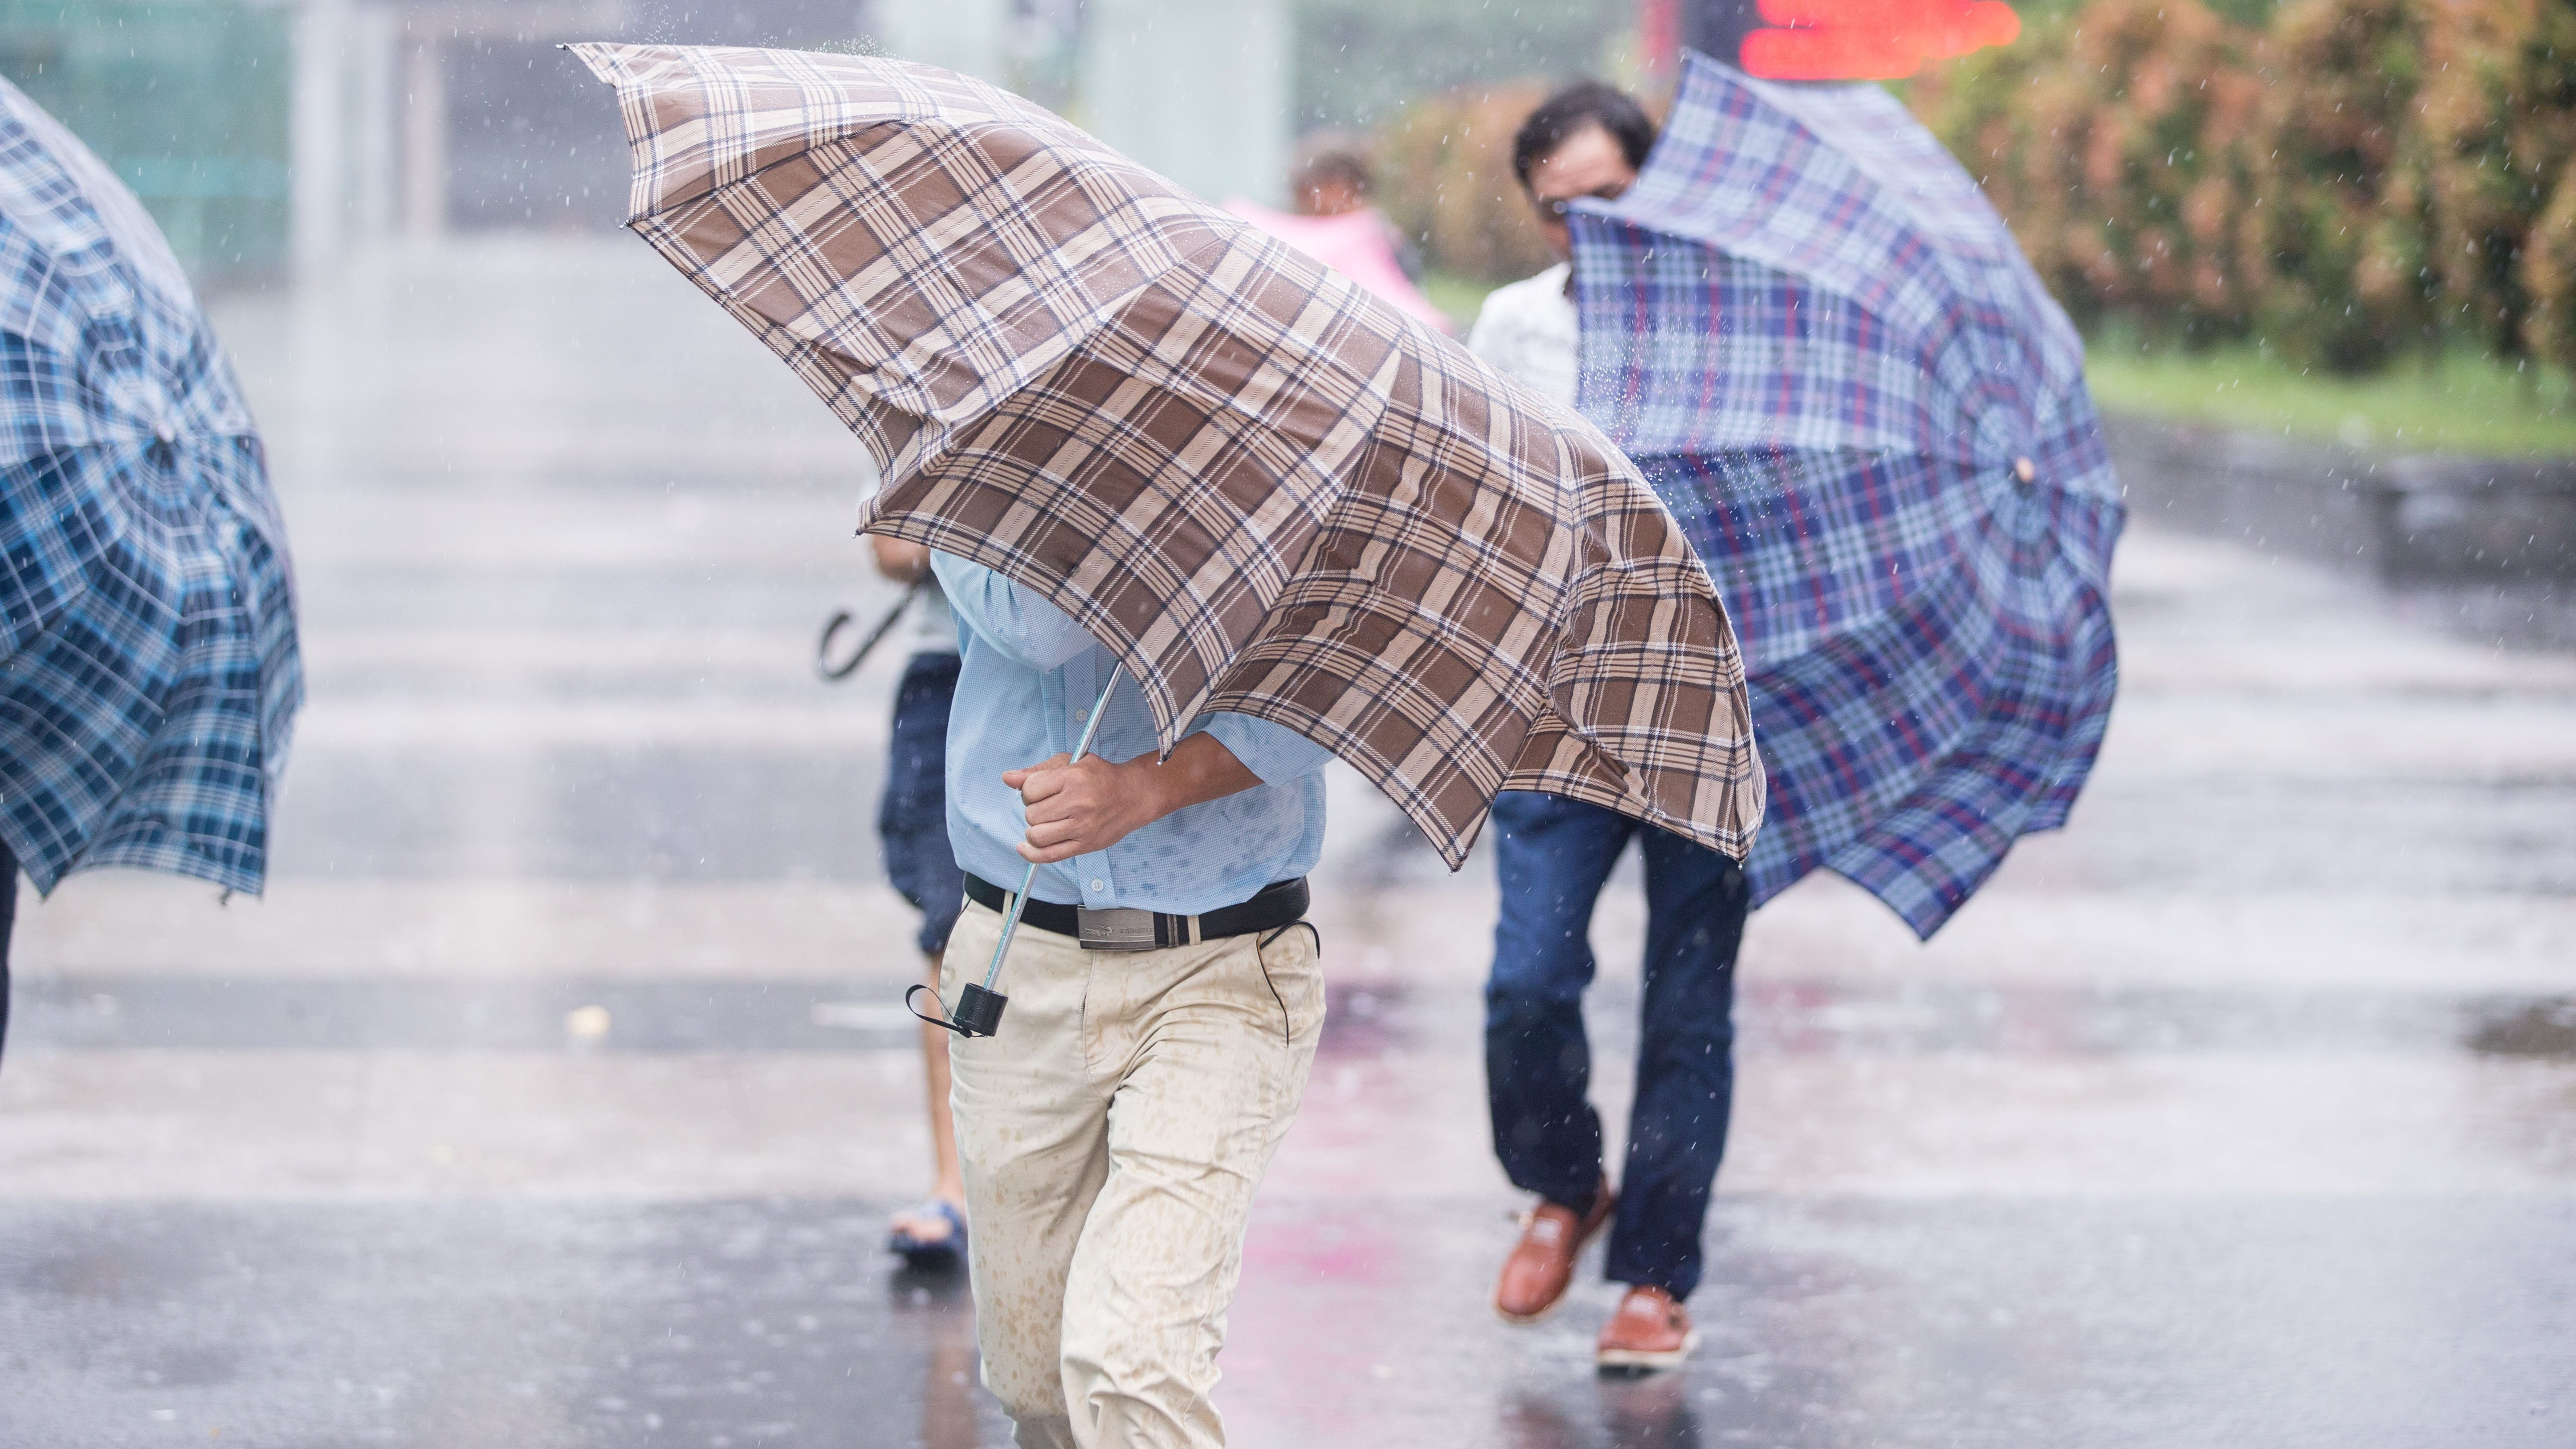 People walk holding umbrellas in rain brought by Typhoon Haima, in Shenzhen, Guangdong province, China, October 21, 2016. REUTERS/Stringer ATTENTION EDITORS - THIS IMAGE WAS PROVIDED BY A THIRD PARTY. EDITORIAL USE ONLY. CHINA OUT. NO COMMERCIAL OR EDITORIAL SALES IN CHINA.  - RTX2PTYO